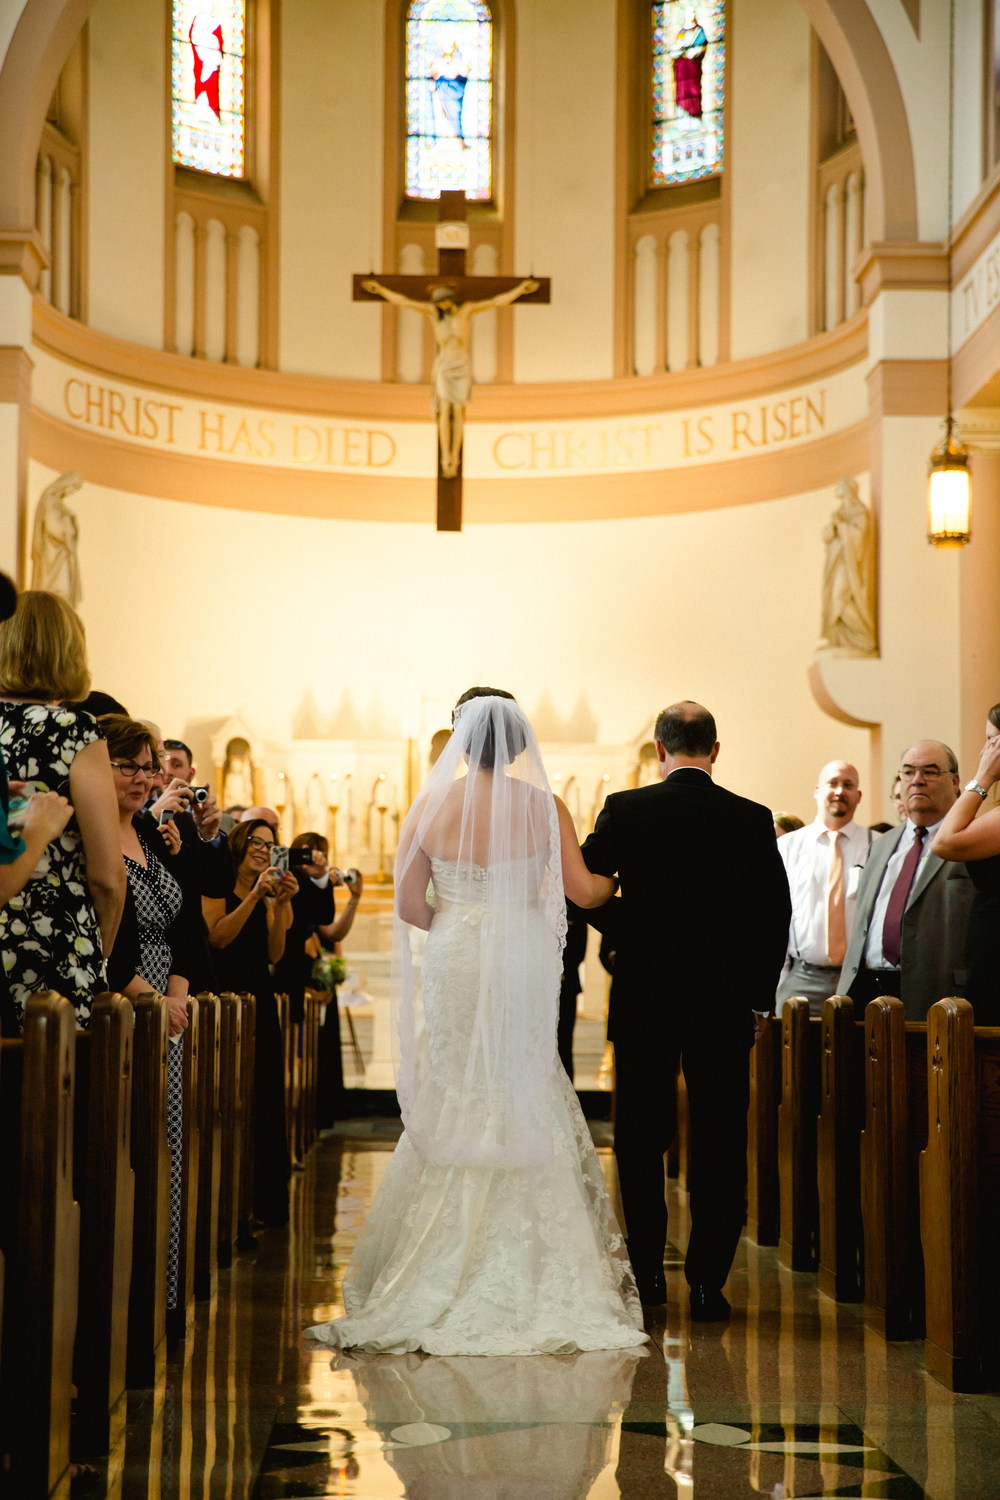 Vness_Photography_Wedding_Photographer_Washington-DC_Fish_Wedding-291.JPG